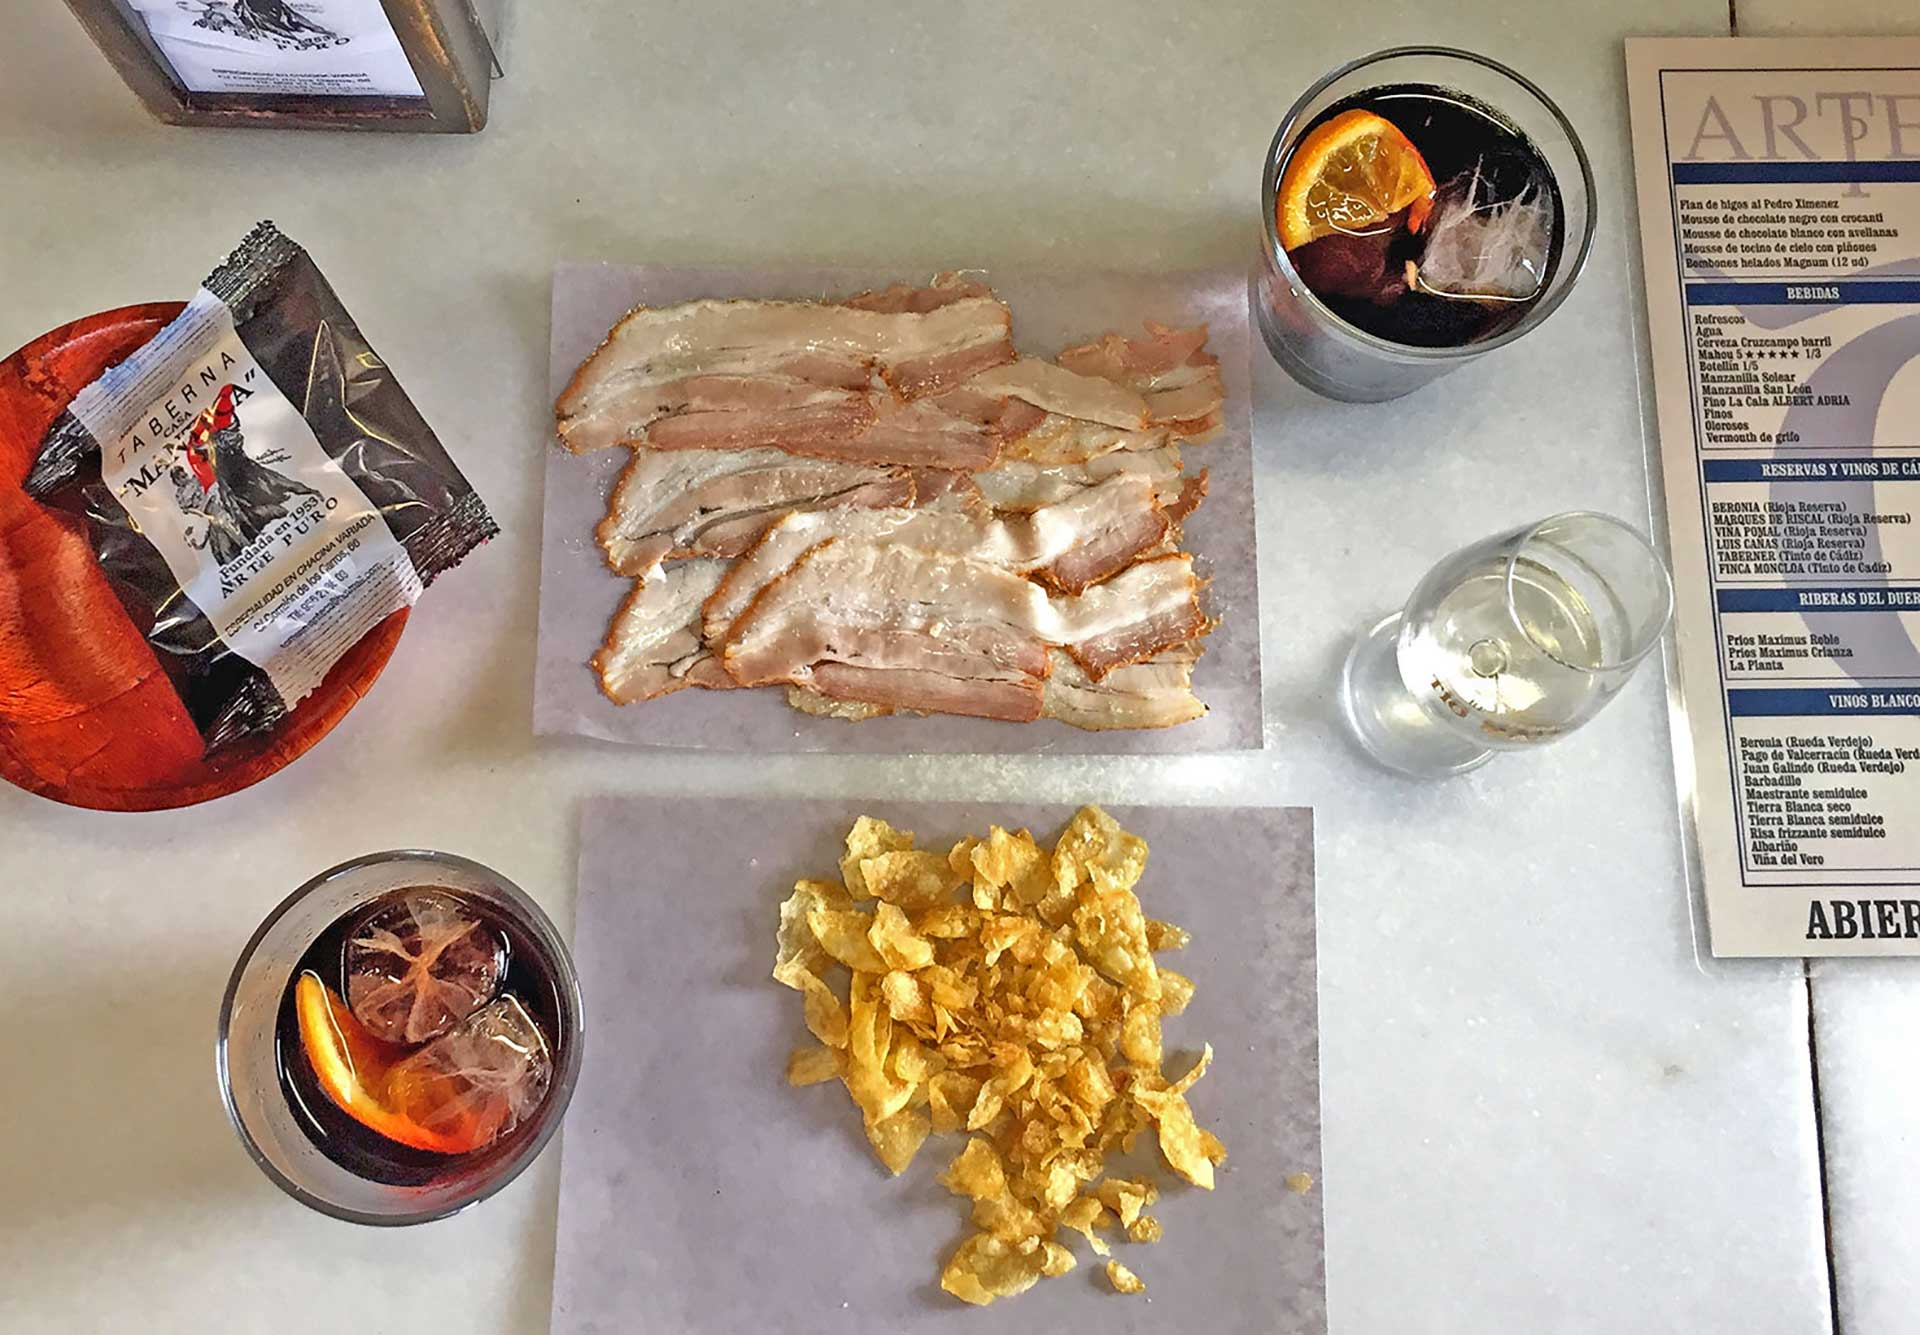 Food, sherry wines, sherry vermouth and tapas are the basics in a tabanco in Jerez